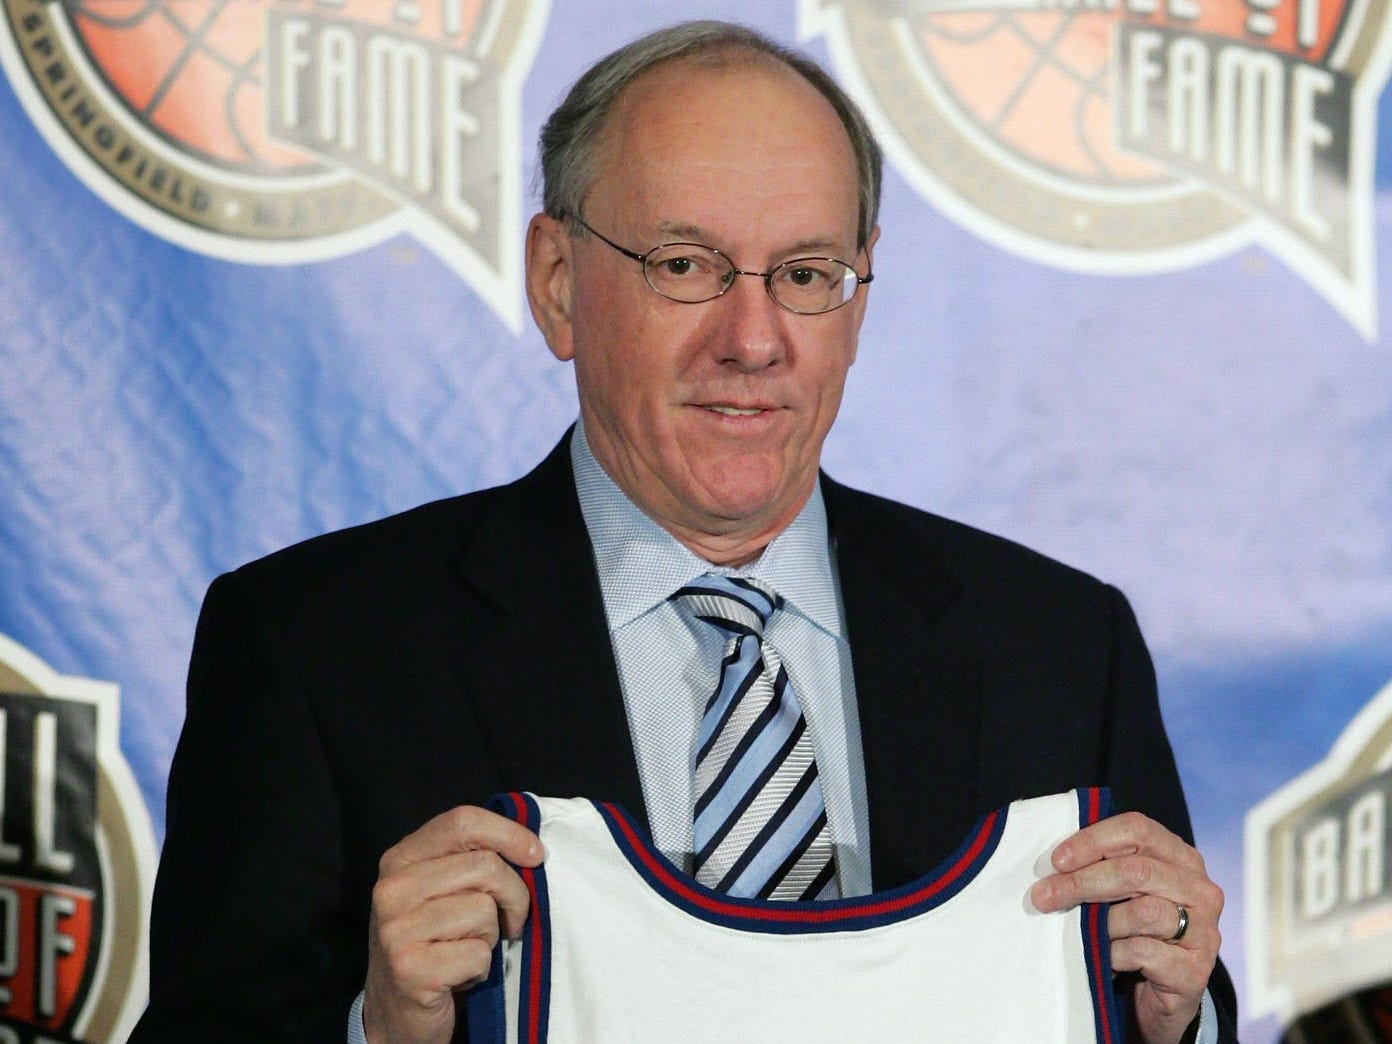 Jim Boeheim is presented as one of the newest members of the Basketball Hall of Fame during an announcement Monday, April 4, 2005 in St. Louis.